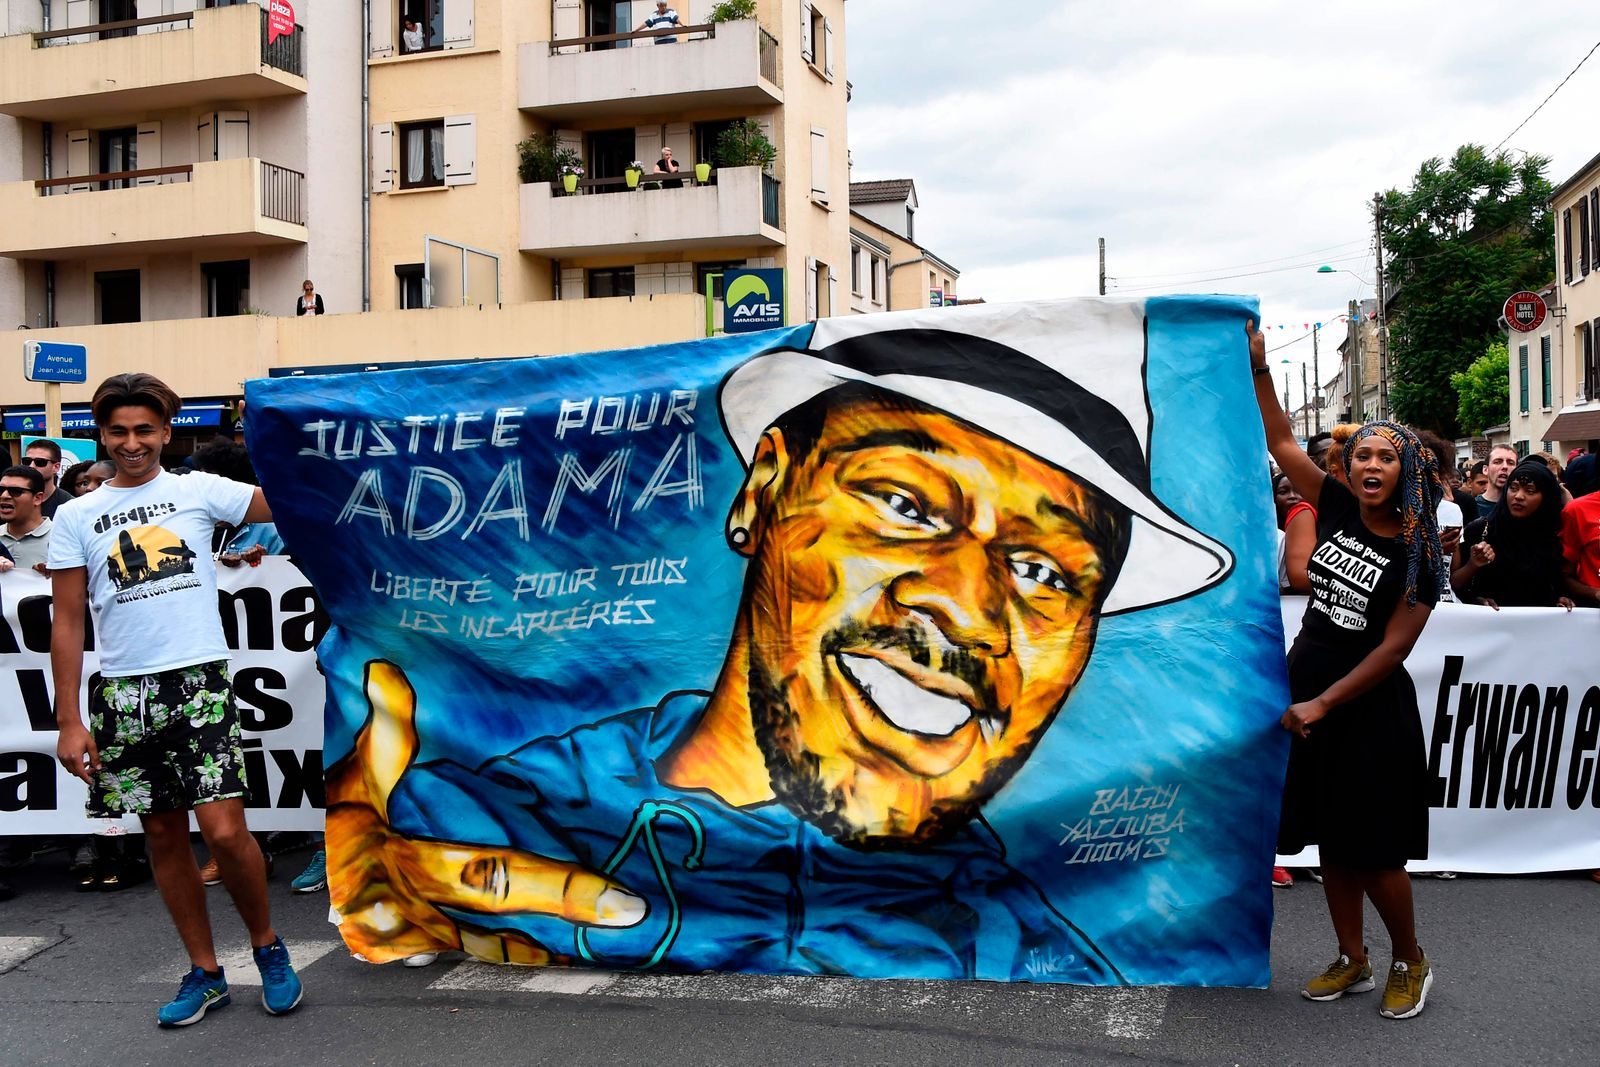 FILES-FRANCE-POLICE-TRAORE